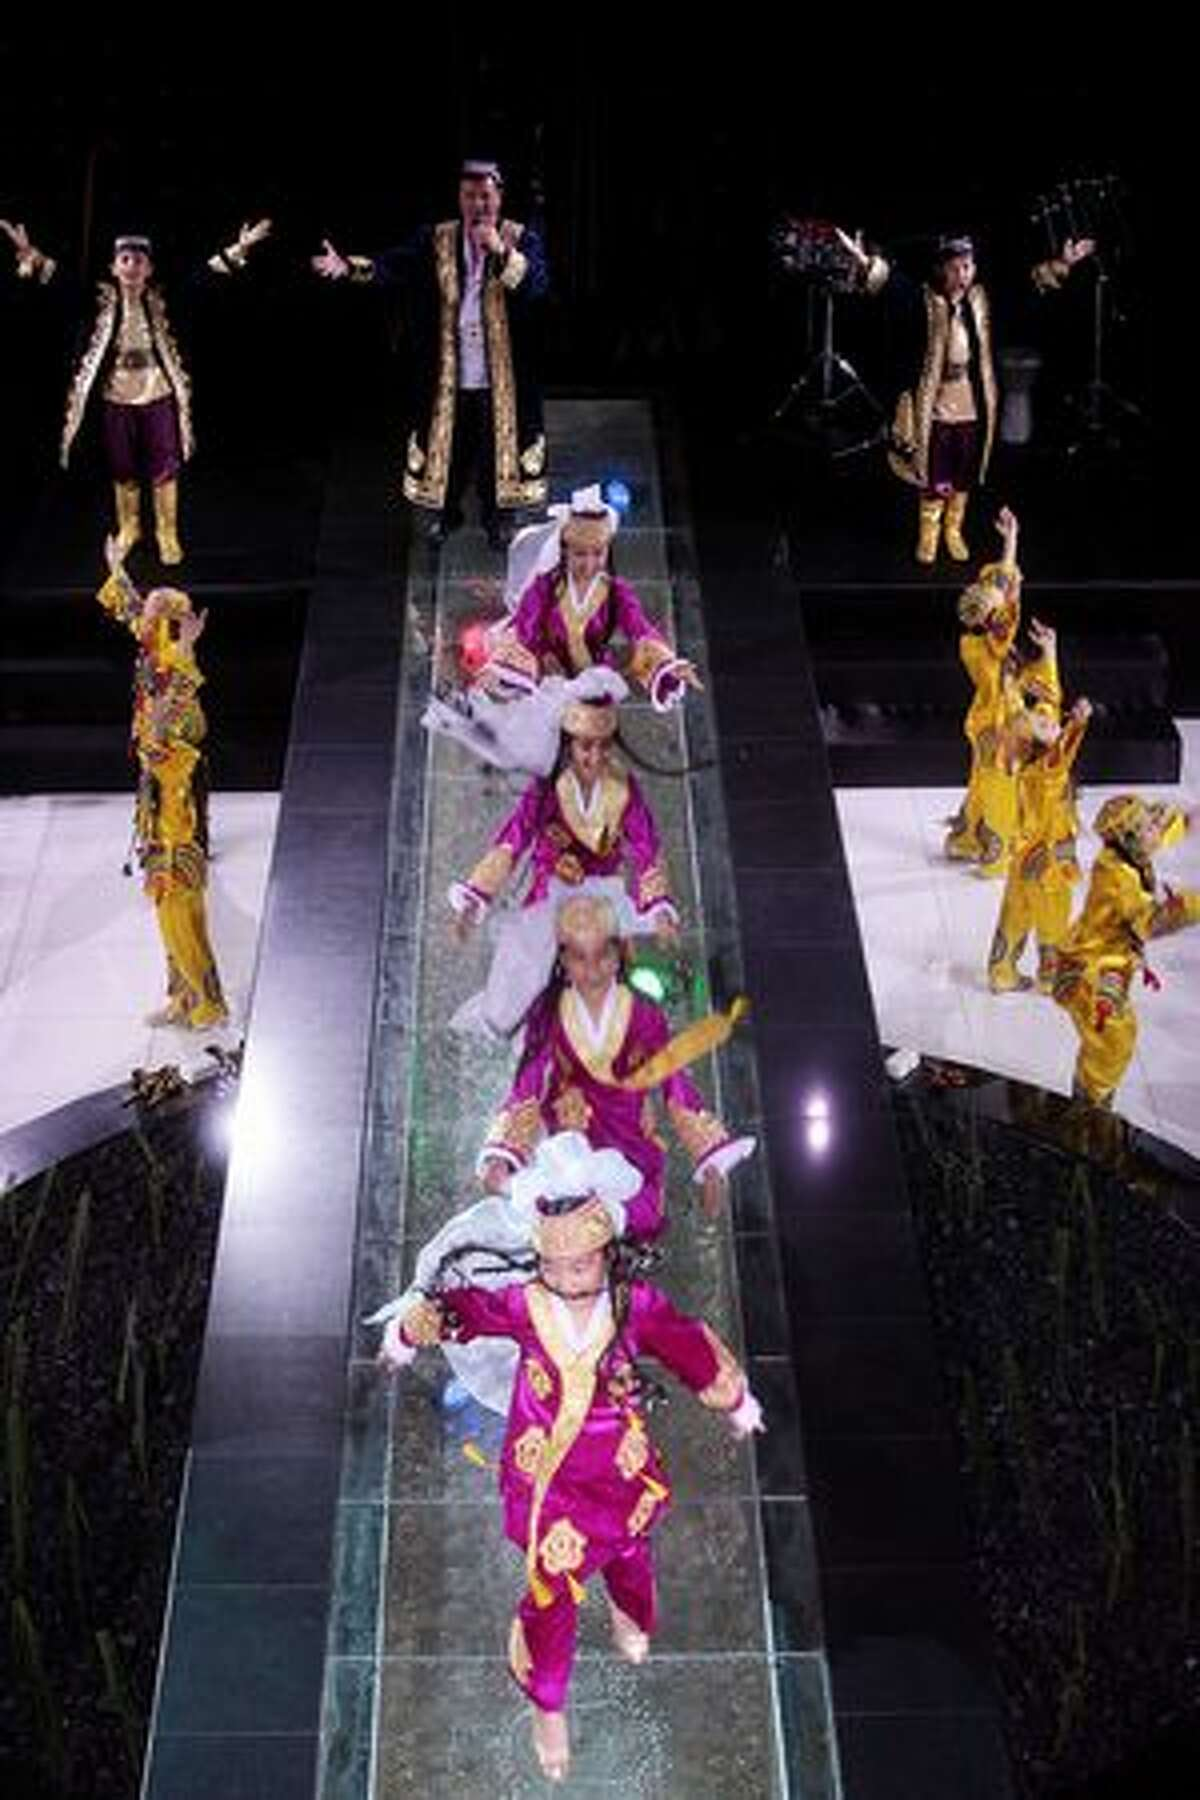 Dancers perform on stage during the Festival Of National Dress at Centre Of National Arts in Tashkent, Uzbekistan.